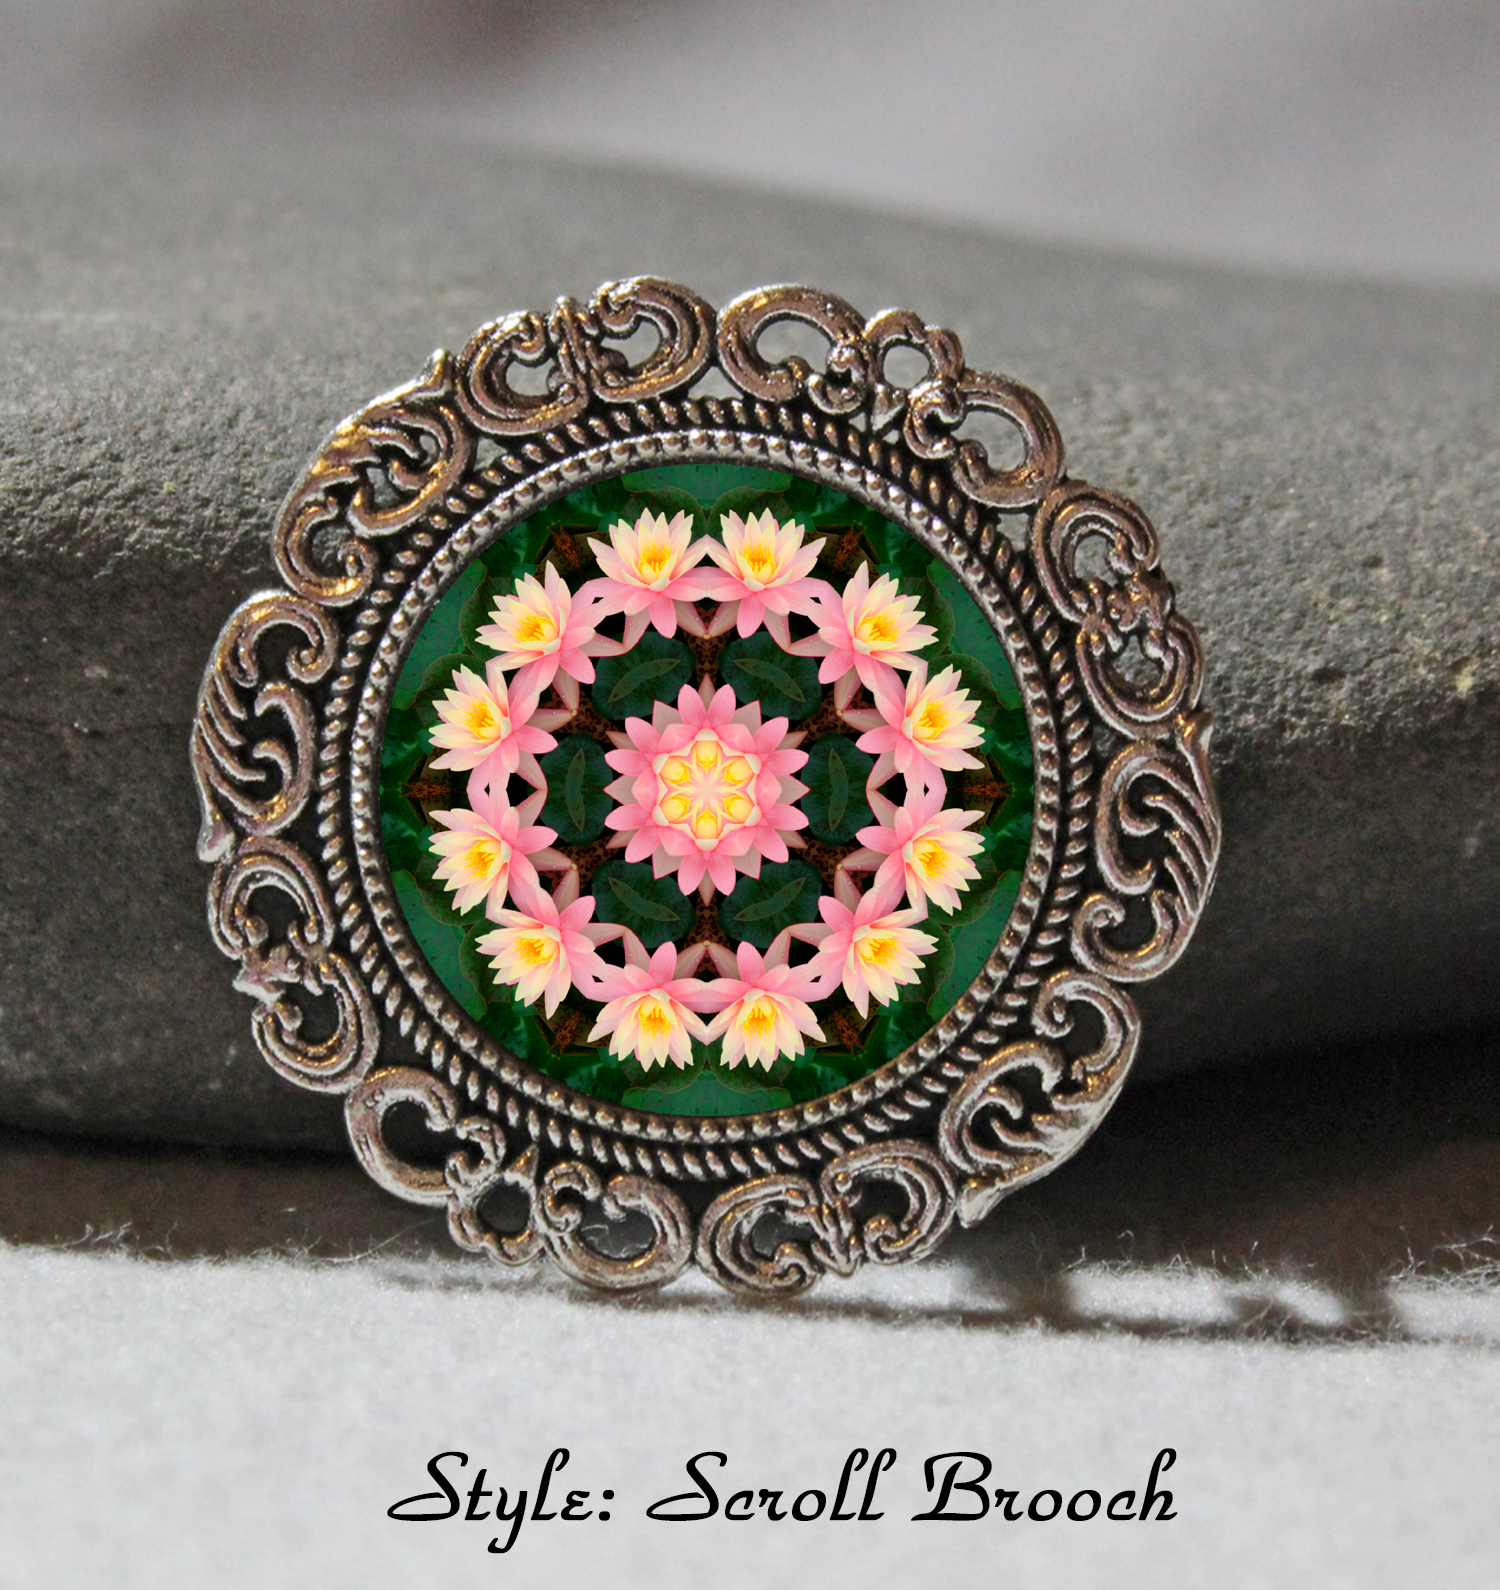 Brooch Lapel Pin Collar Pin Hat Pin Scarf Pin Lotus Flower Chakra Mandala Sacred Geometry Unique Gift For Her Illumination 1